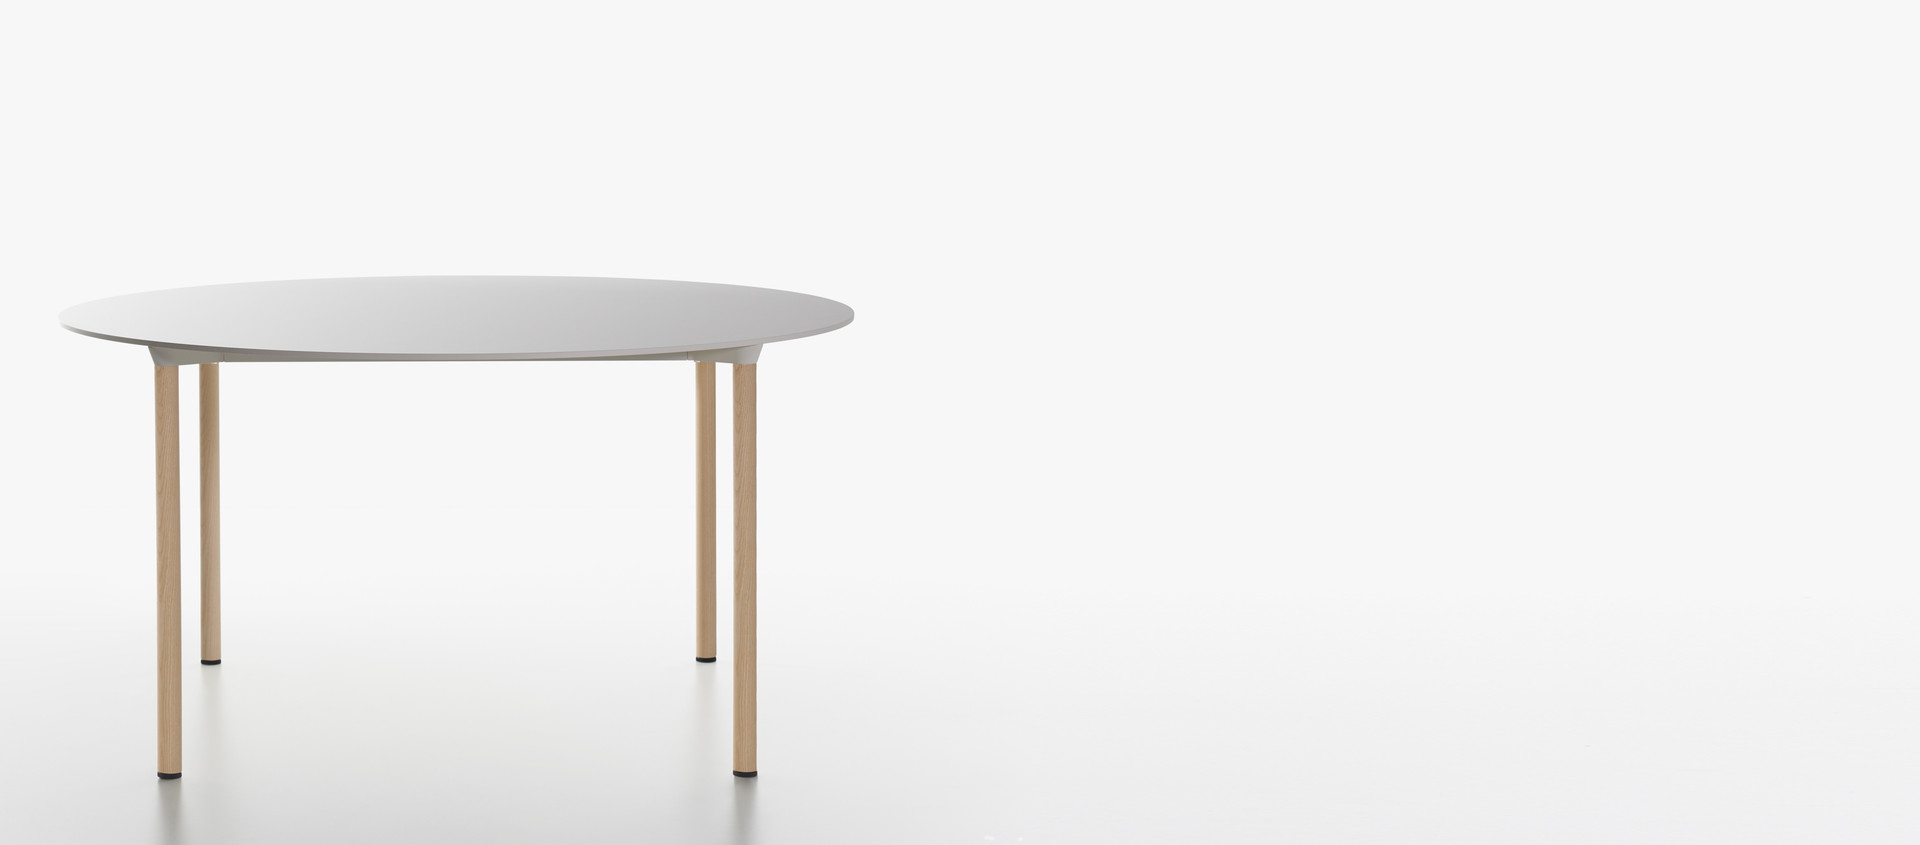 HERO - Plank MONZA table round